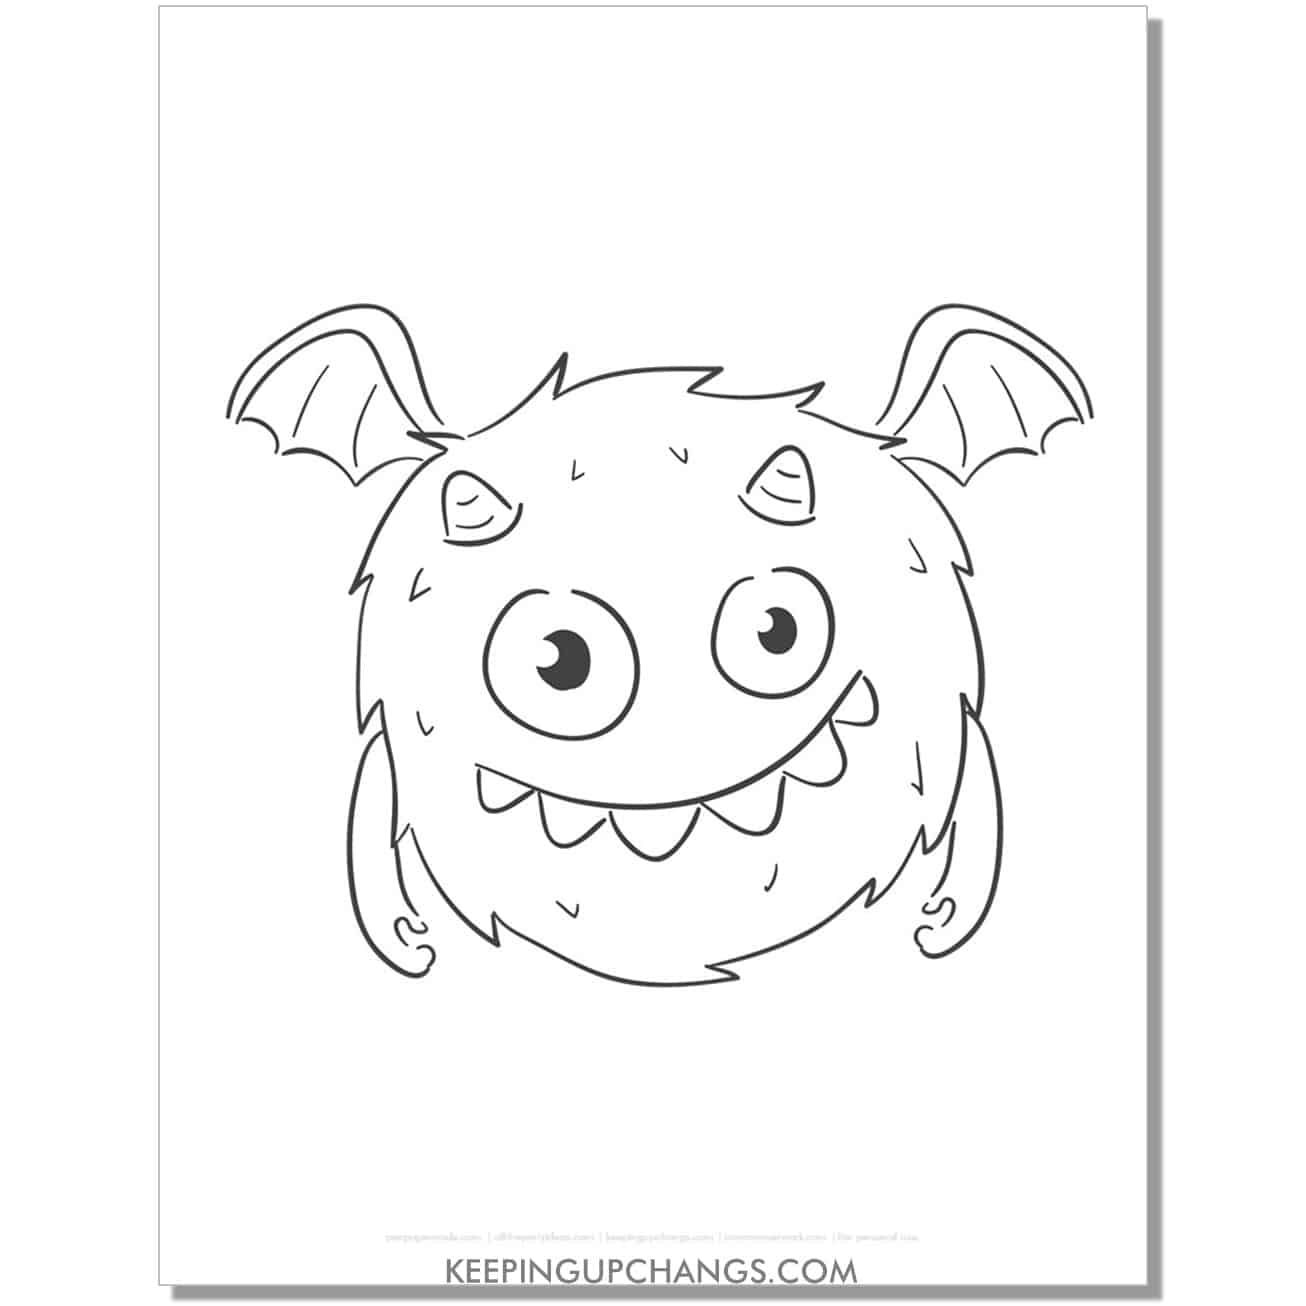 free round, fuzzy, flying monster coloring page.